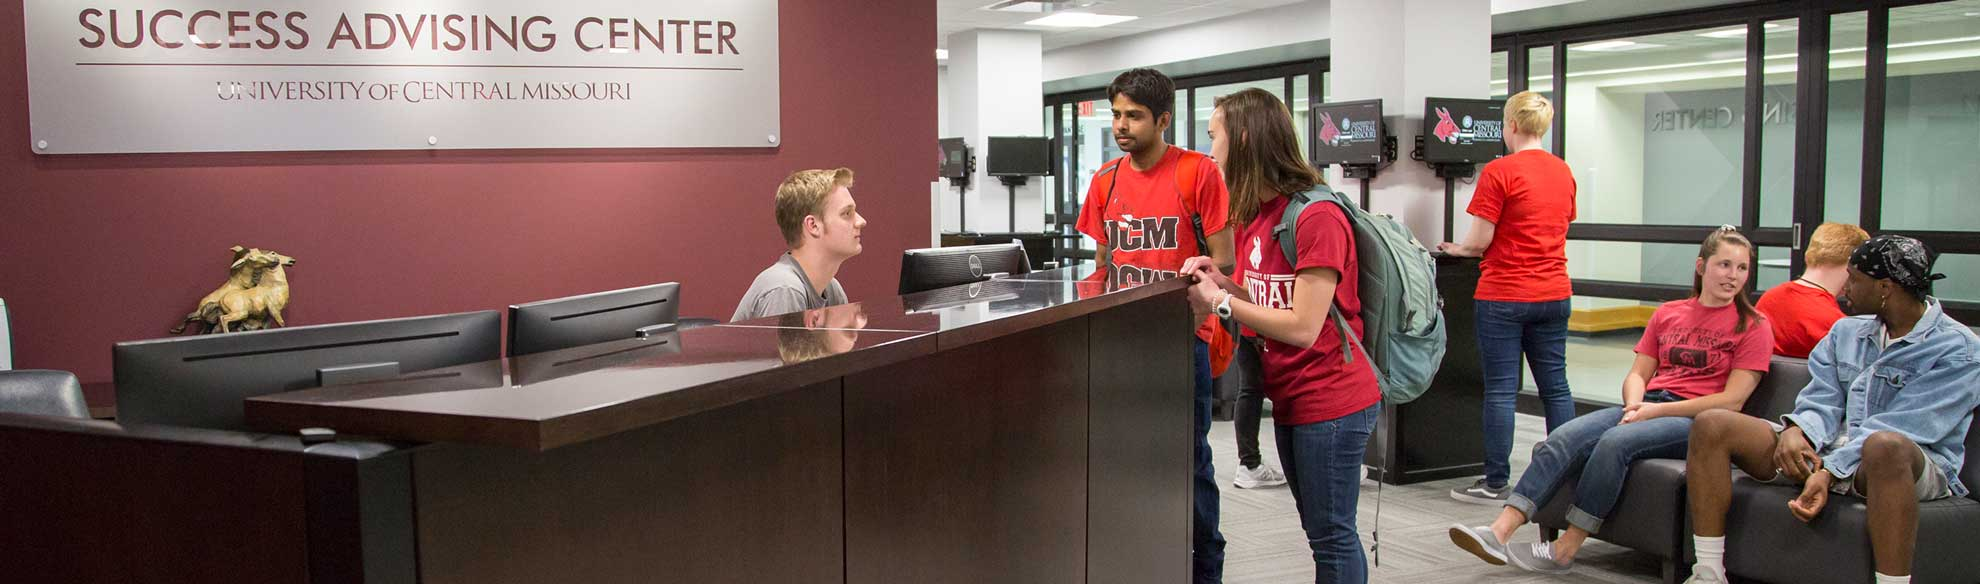 UCM students visiting at the Success Advising Center